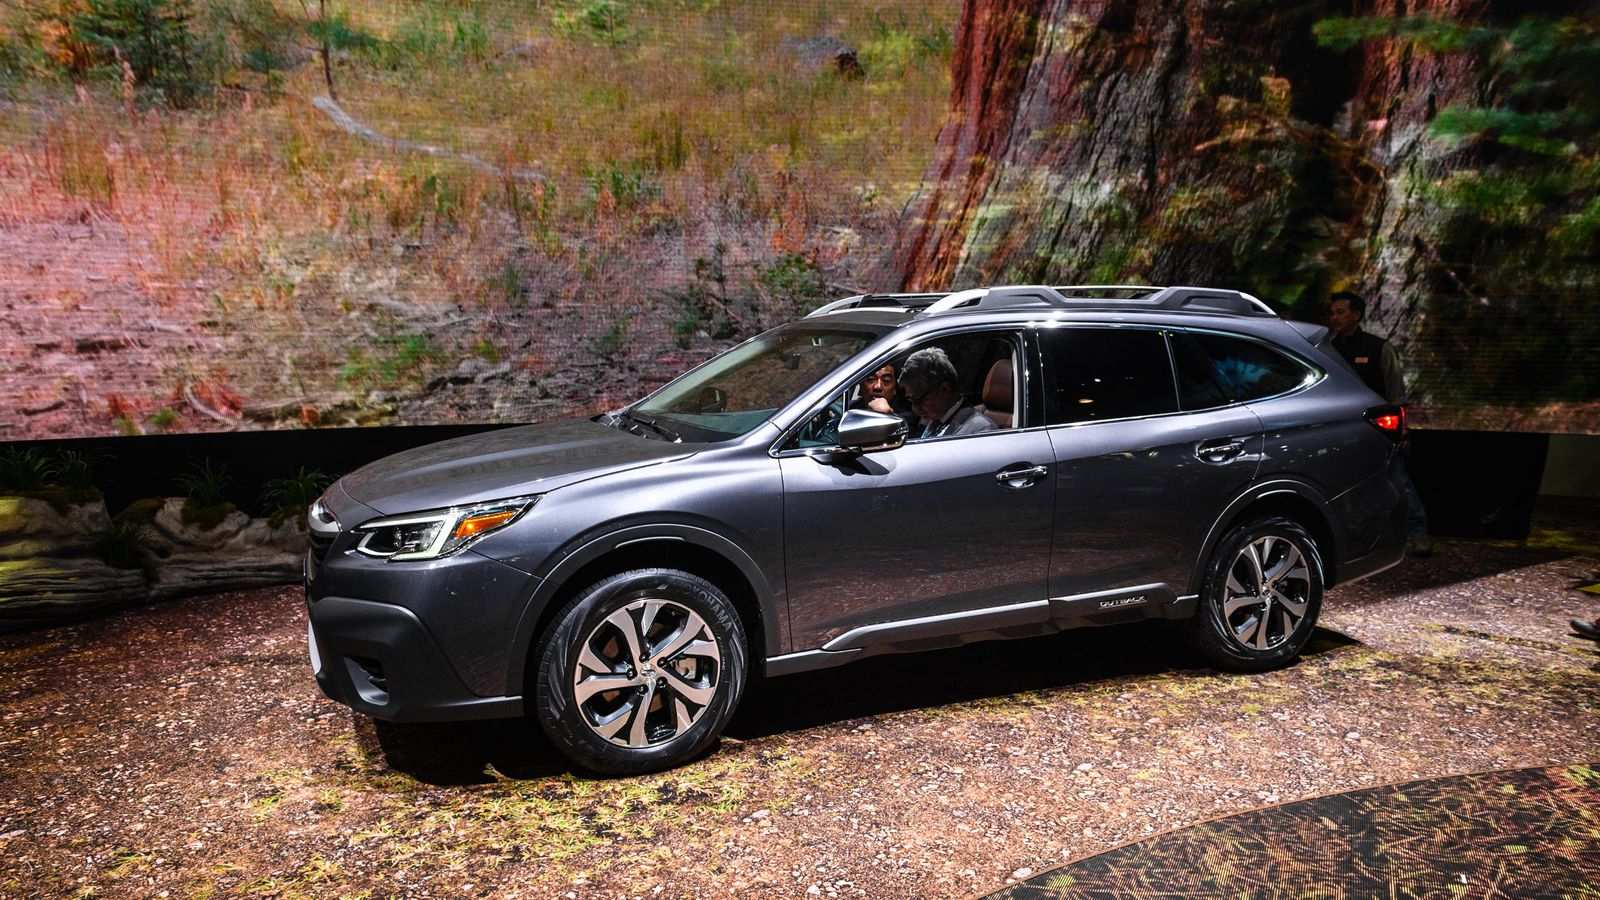 83 Gallery of Subaru Outback 2020 New York Exterior and Interior with Subaru Outback 2020 New York